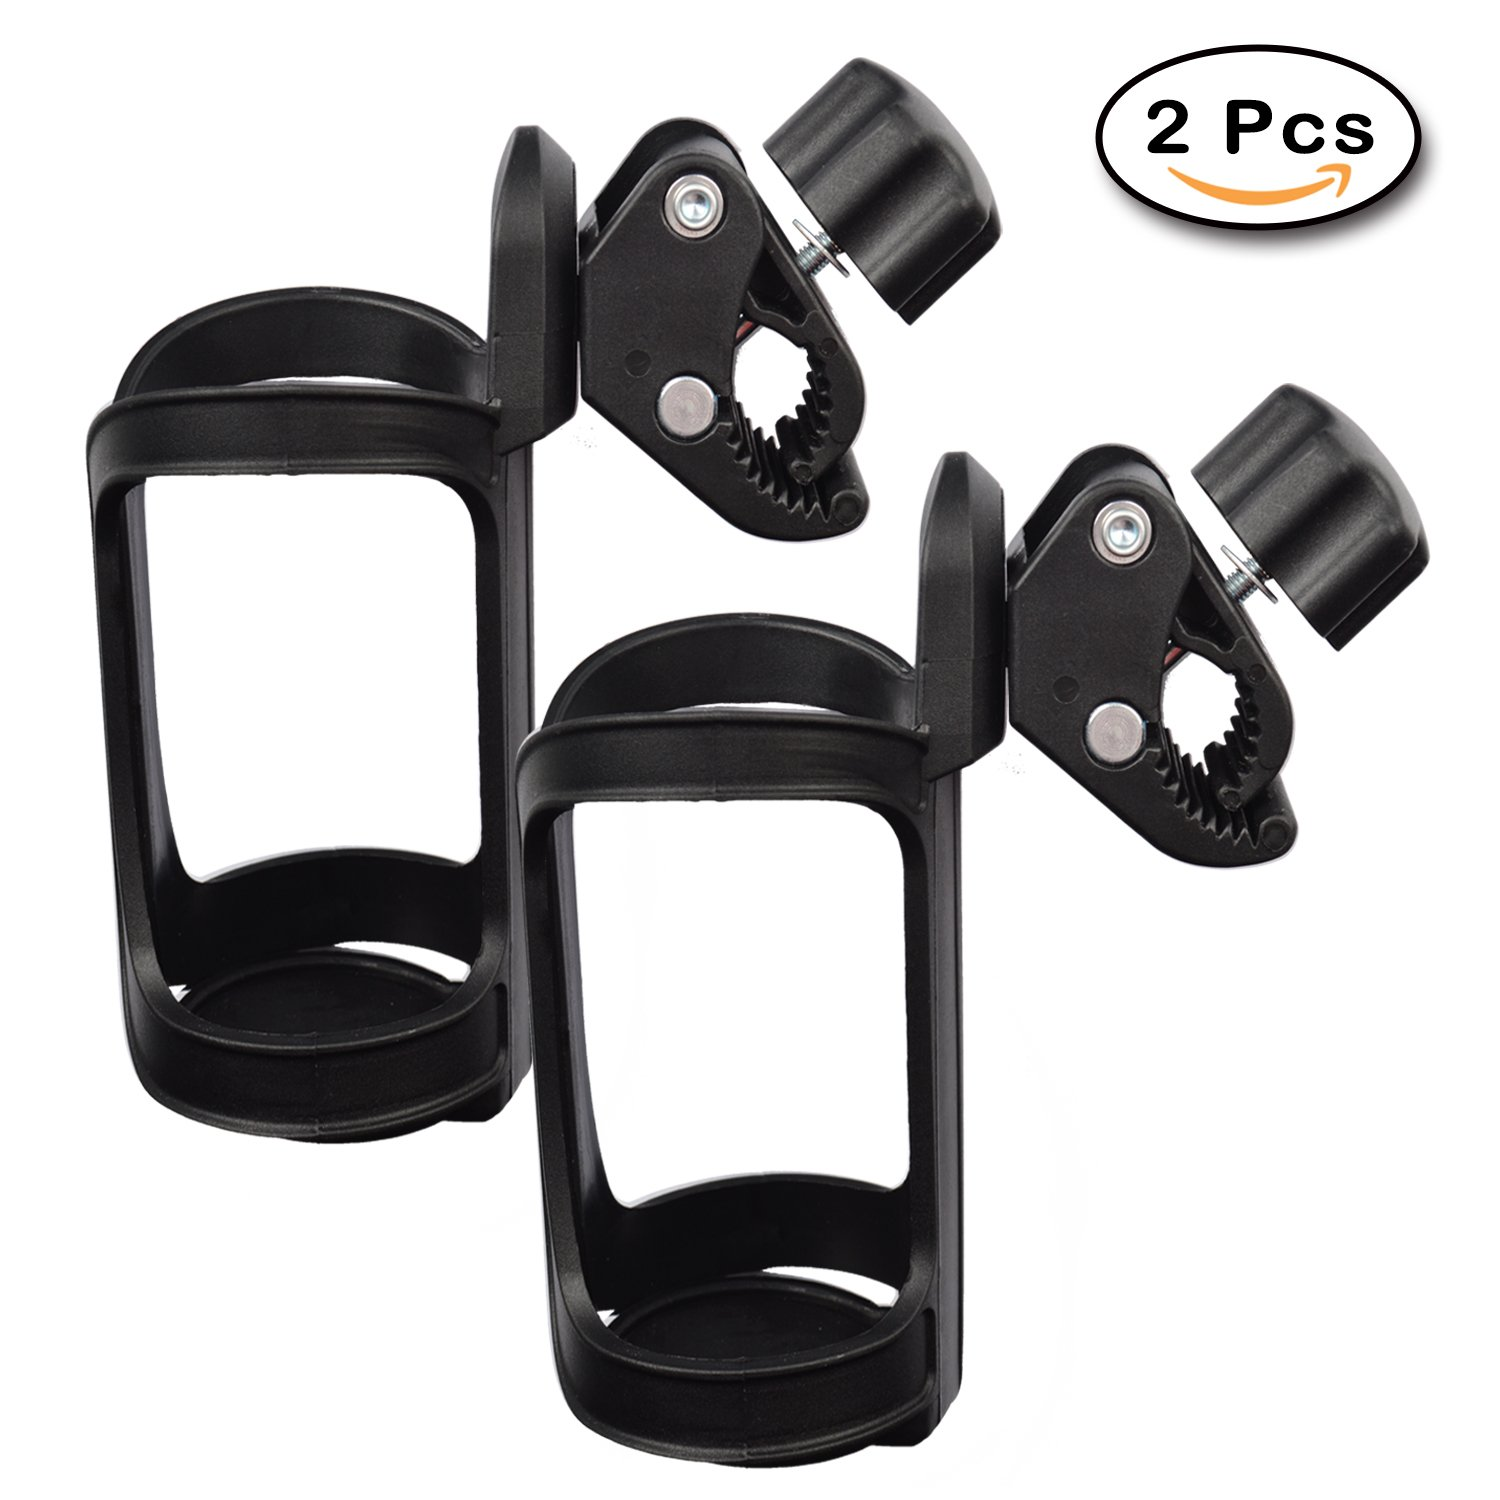 Upgrade Edition Bike Cup Holder, Stroller Drink Holders by FindUWill,360 Degrees Universal Rotation Cup Drink Holder for Baby Stroller/Pushchair, Bicycle Strollers, Wheelchair